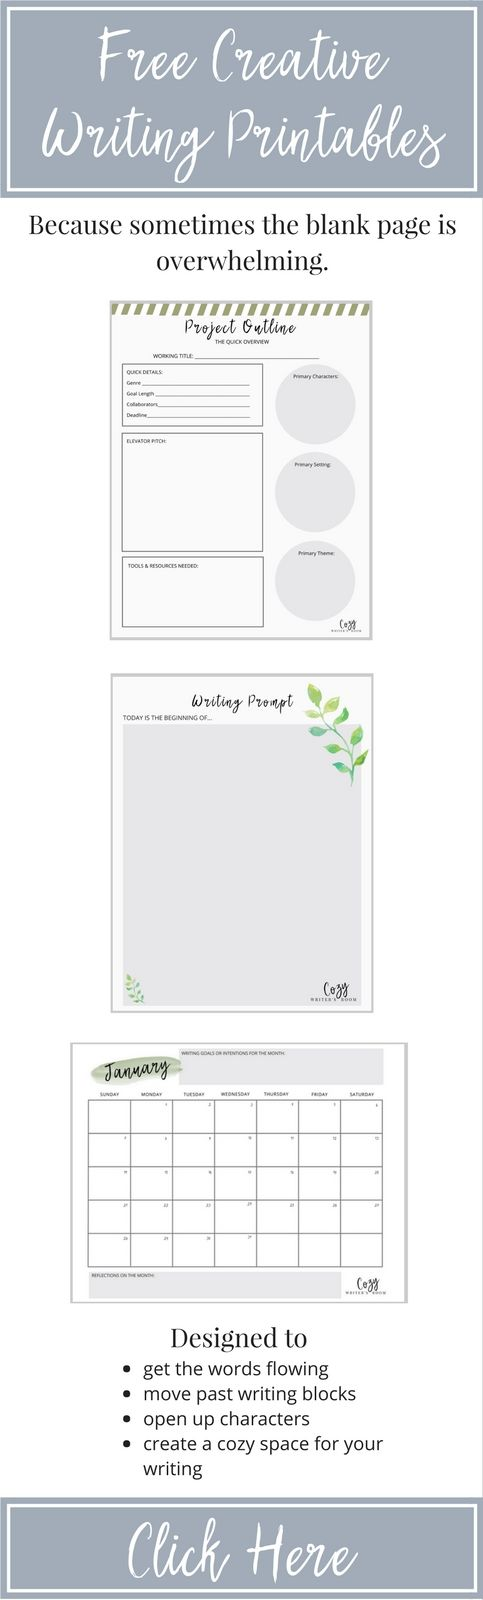 Free Creative Writing Printables For Adults. Including Writing Prompts,  Project Printables, Characte… Writing Printables, Picture Writing  Prompts, Writing Prompts